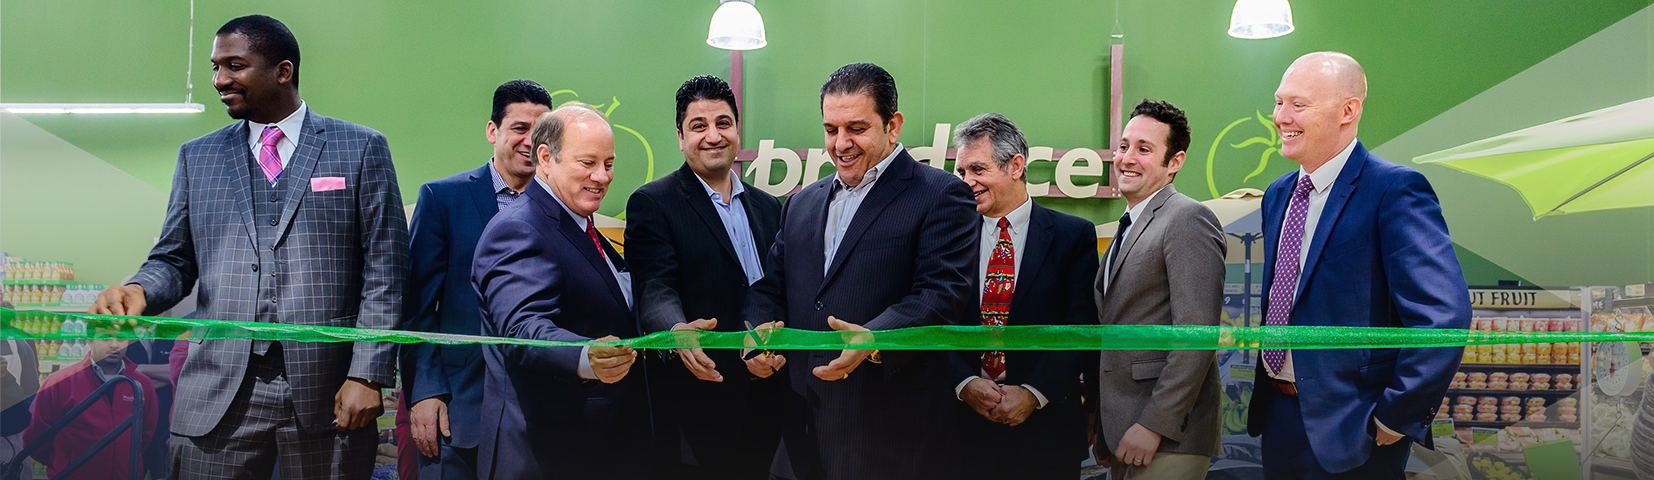 A group of people cut the ribbon at the opening of a project financing by New Markets Tax Credit Allocations